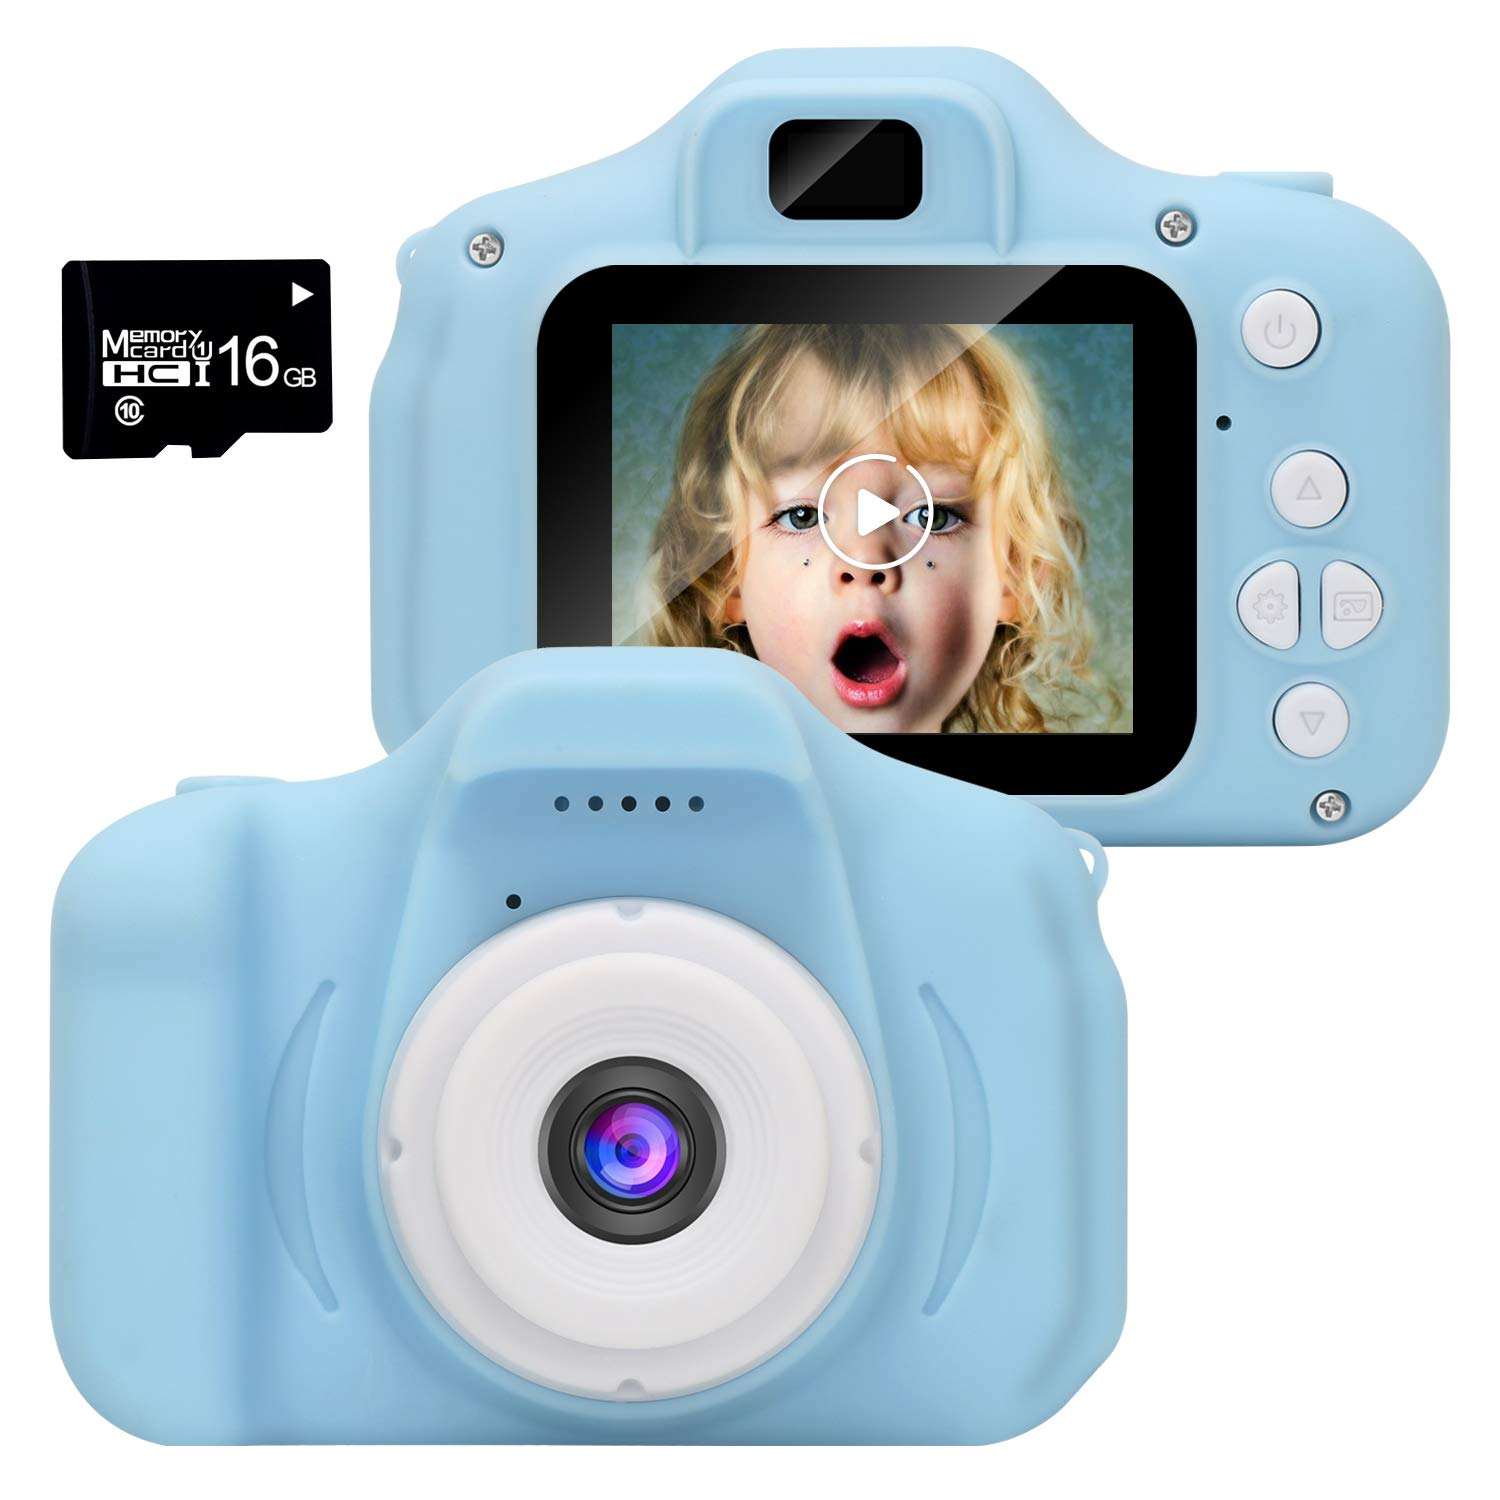 Kids Digital Video Camera Best Birthday Gifts for Boys Age 3-8 , Rechargeable Kids Camera Shockproof 8MP HD Video Cameras Great Gift Mini Child Camcorder (16GB Memory Card Included) by WABOING (Image #1)